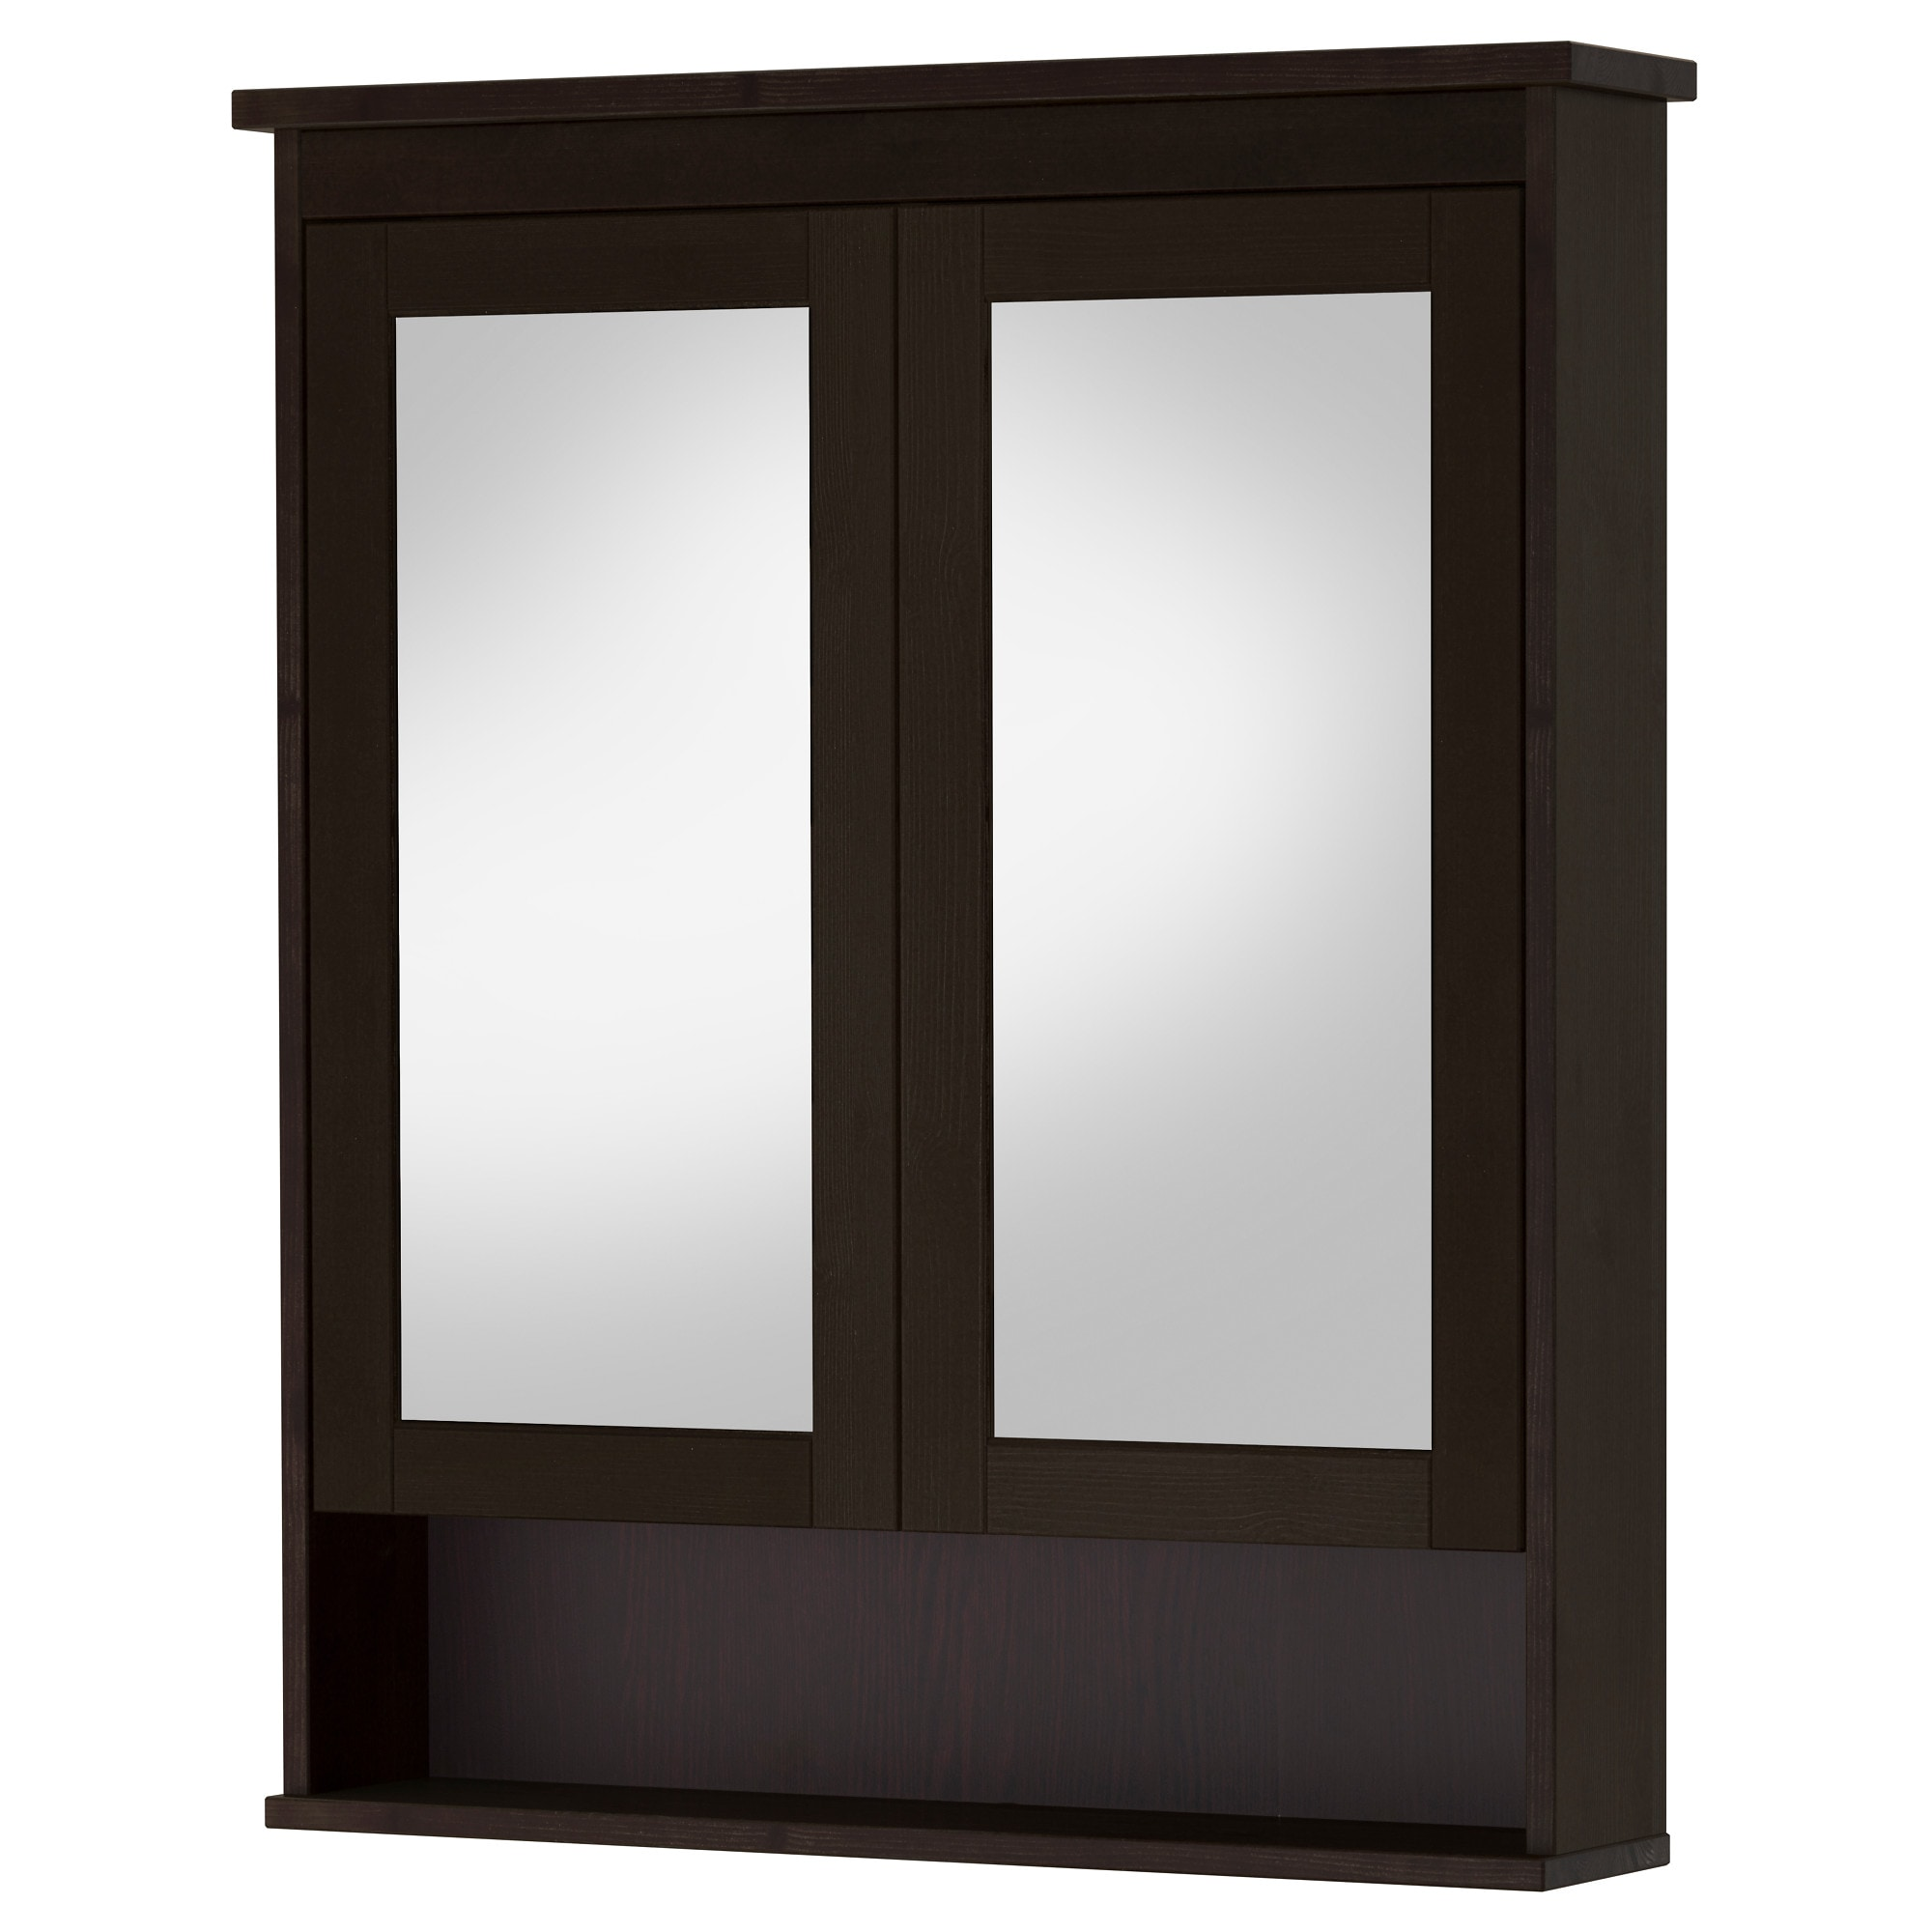 Bathroom mirror cabinet - Hemnes Mirror Cabinet With 2 Doors Black Brown Stain 32 5 8x6 1 4x38 5 8 Ikea